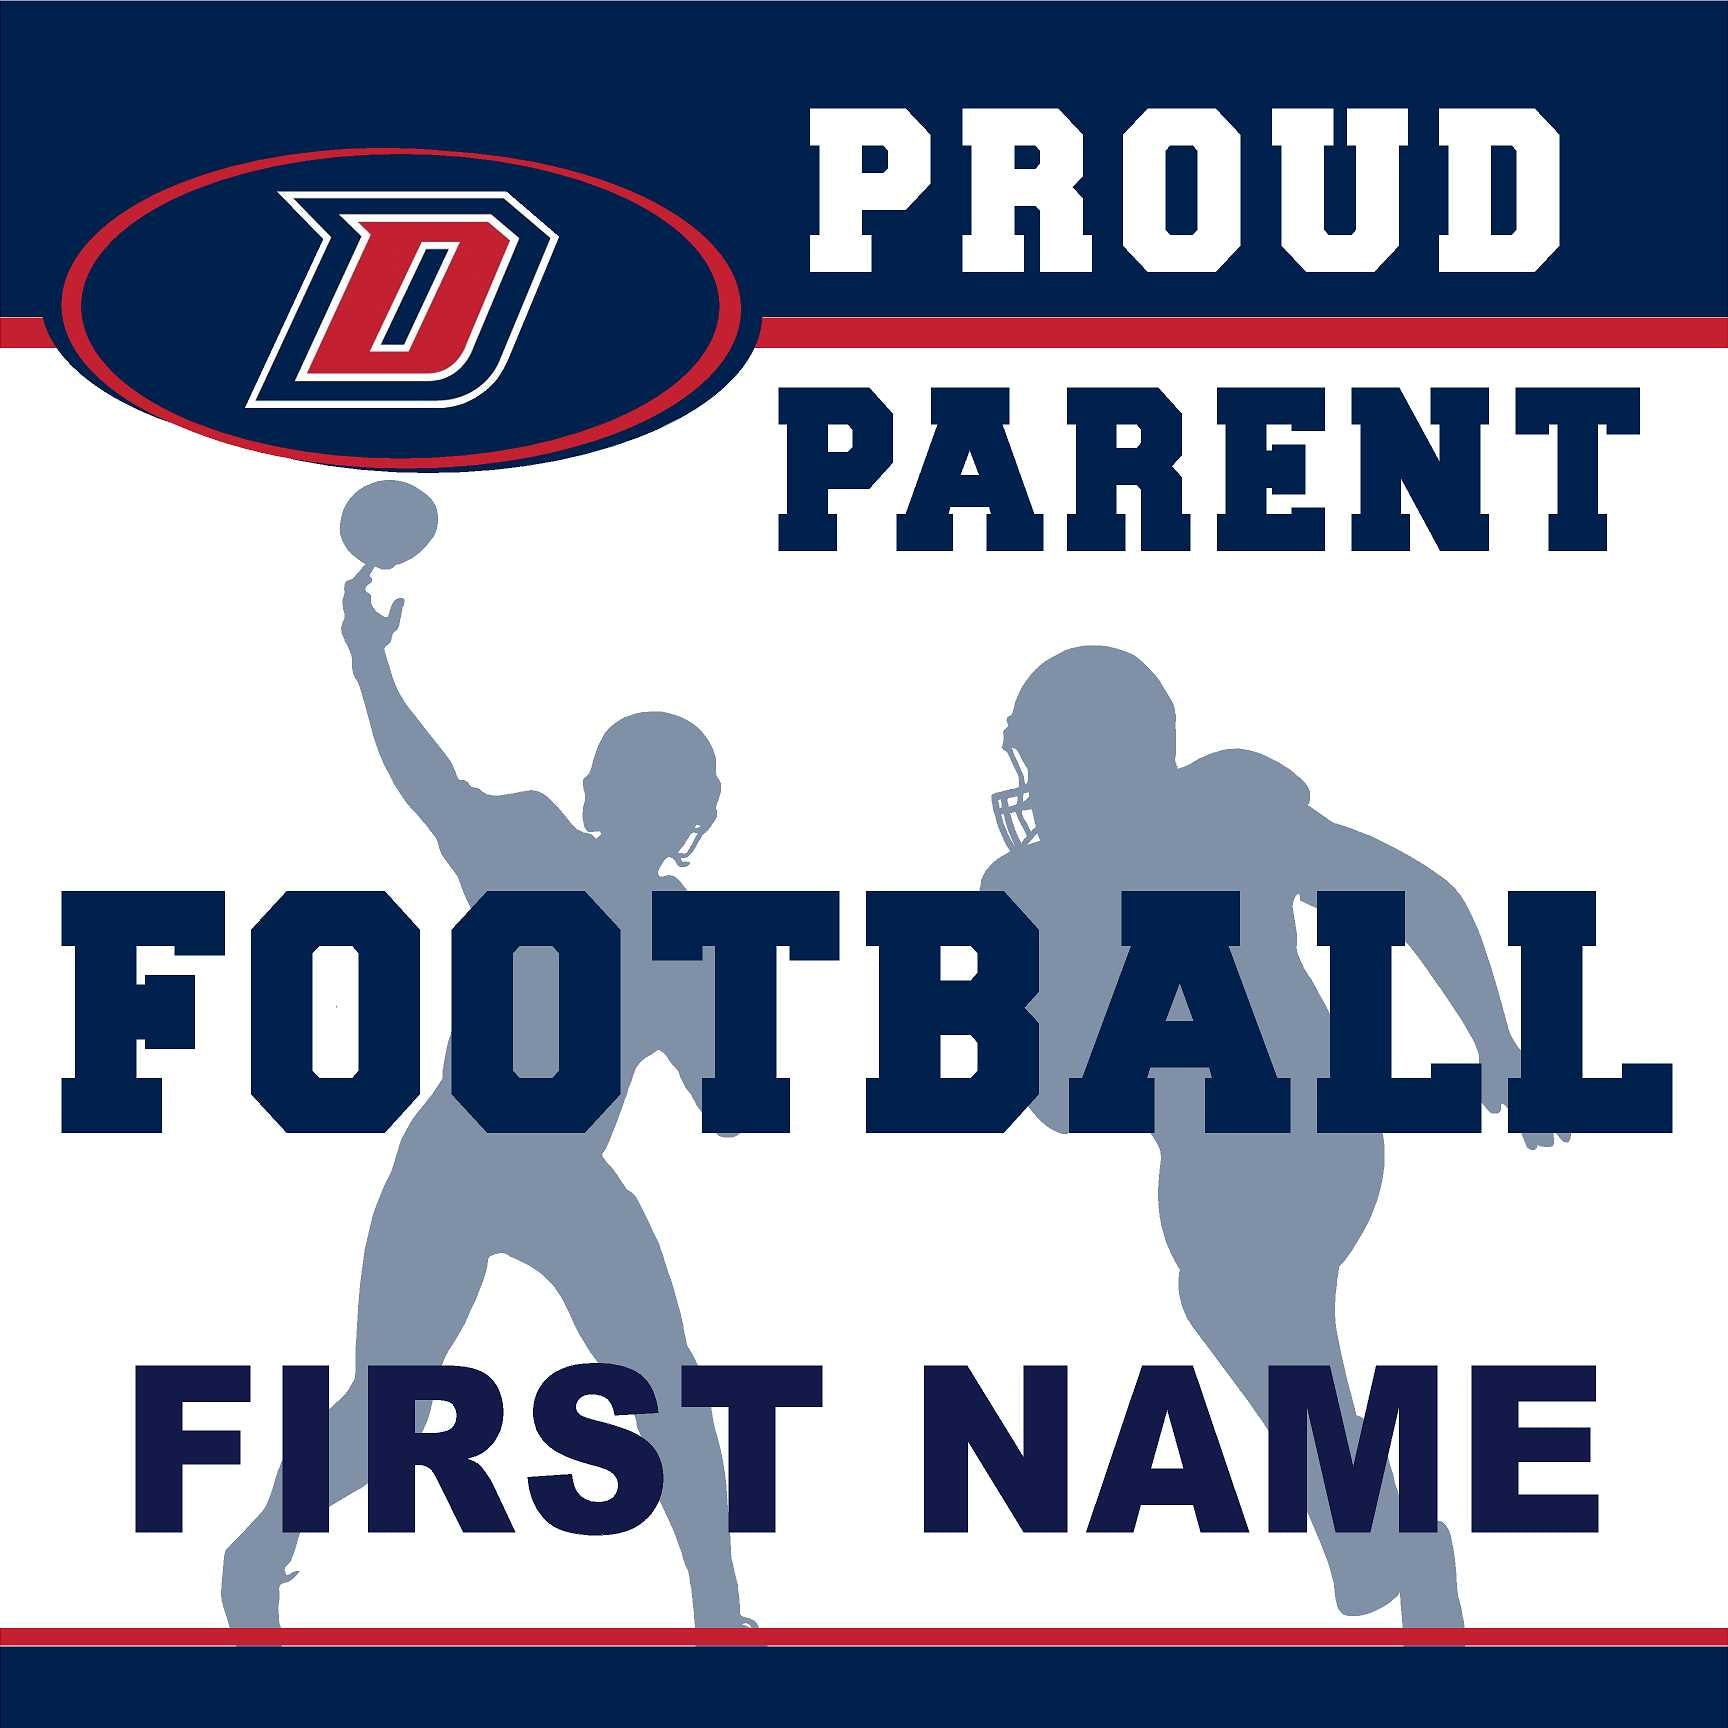 Dublin High School Football (Parent) 24x24 Yard Sign (includes installation in your yard)